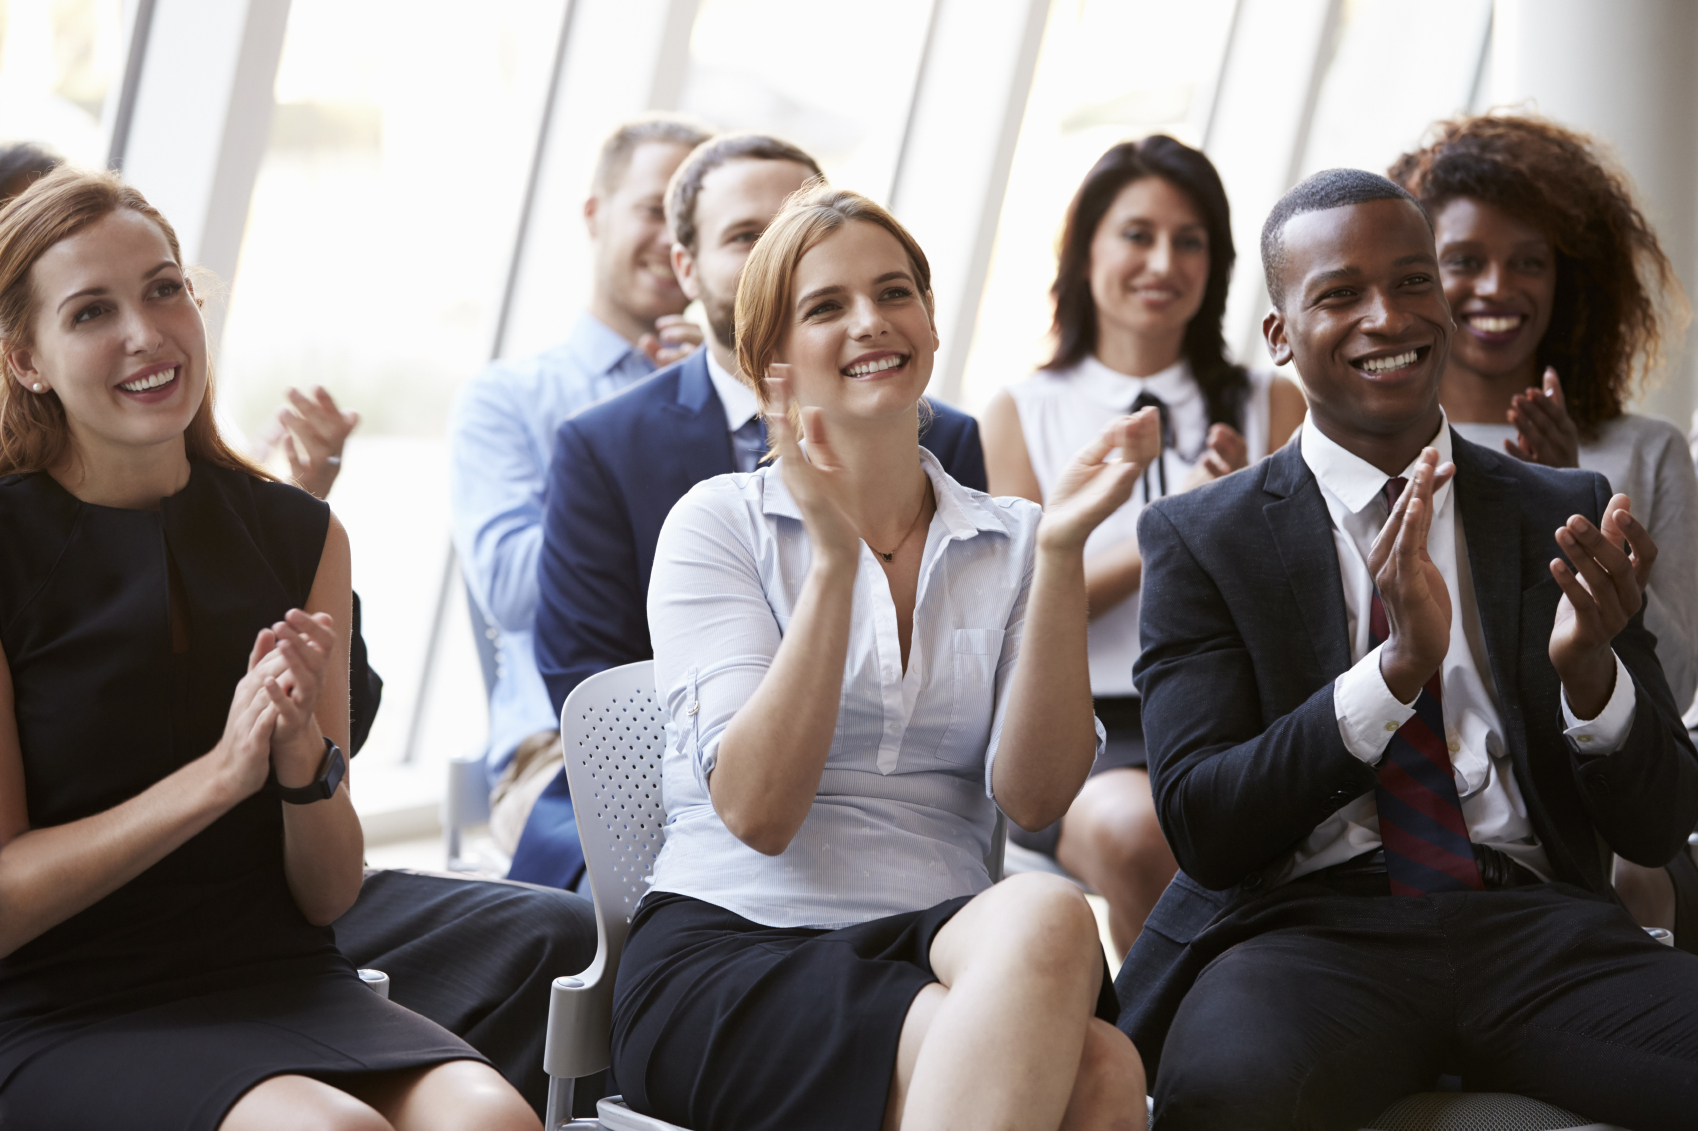 Audience-Applauding-Speaker-At-Business-Conference-000083672187_Medium (3).jpg